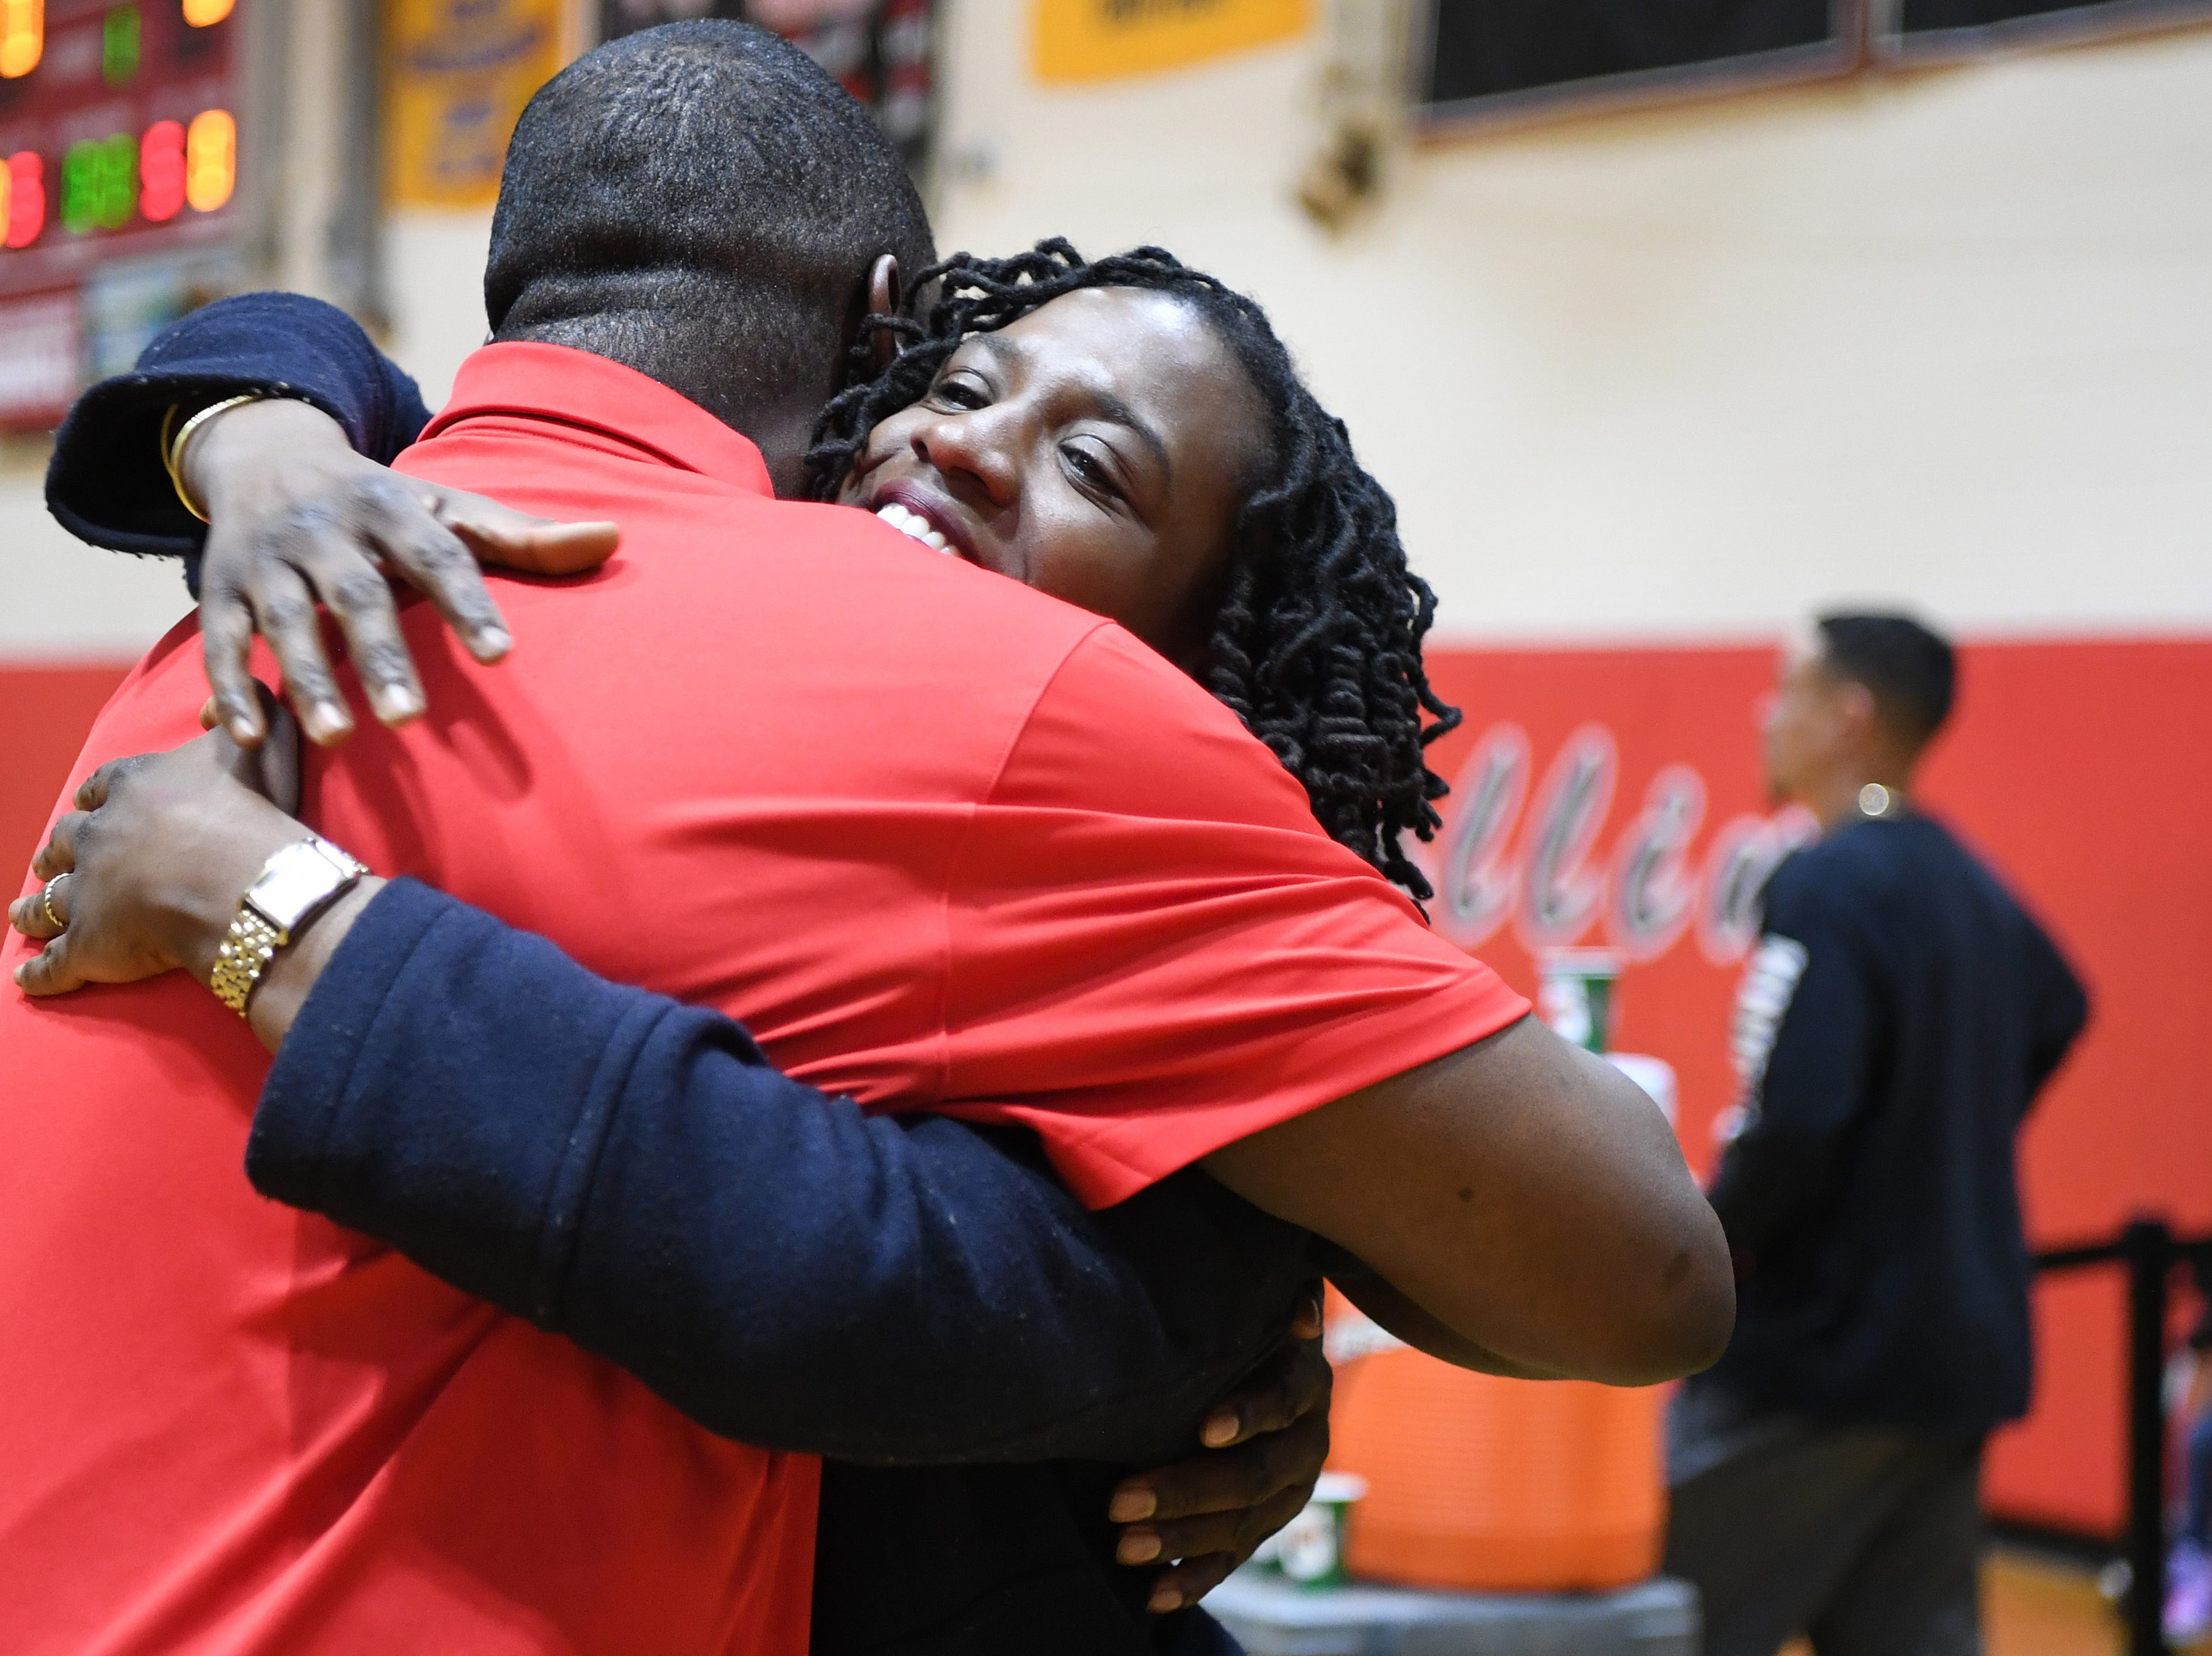 (center) Nicole Louden, who graduated from Kennedy High School in 2001 with a career total of 2,928 points, is honored in a pregame ceremony before the start of a Kennedy girls varsity basketball home game on Thursday, February 7, 2019. Louden hugs Kennedy girls varsity basketball coach MarQuette Burgess.